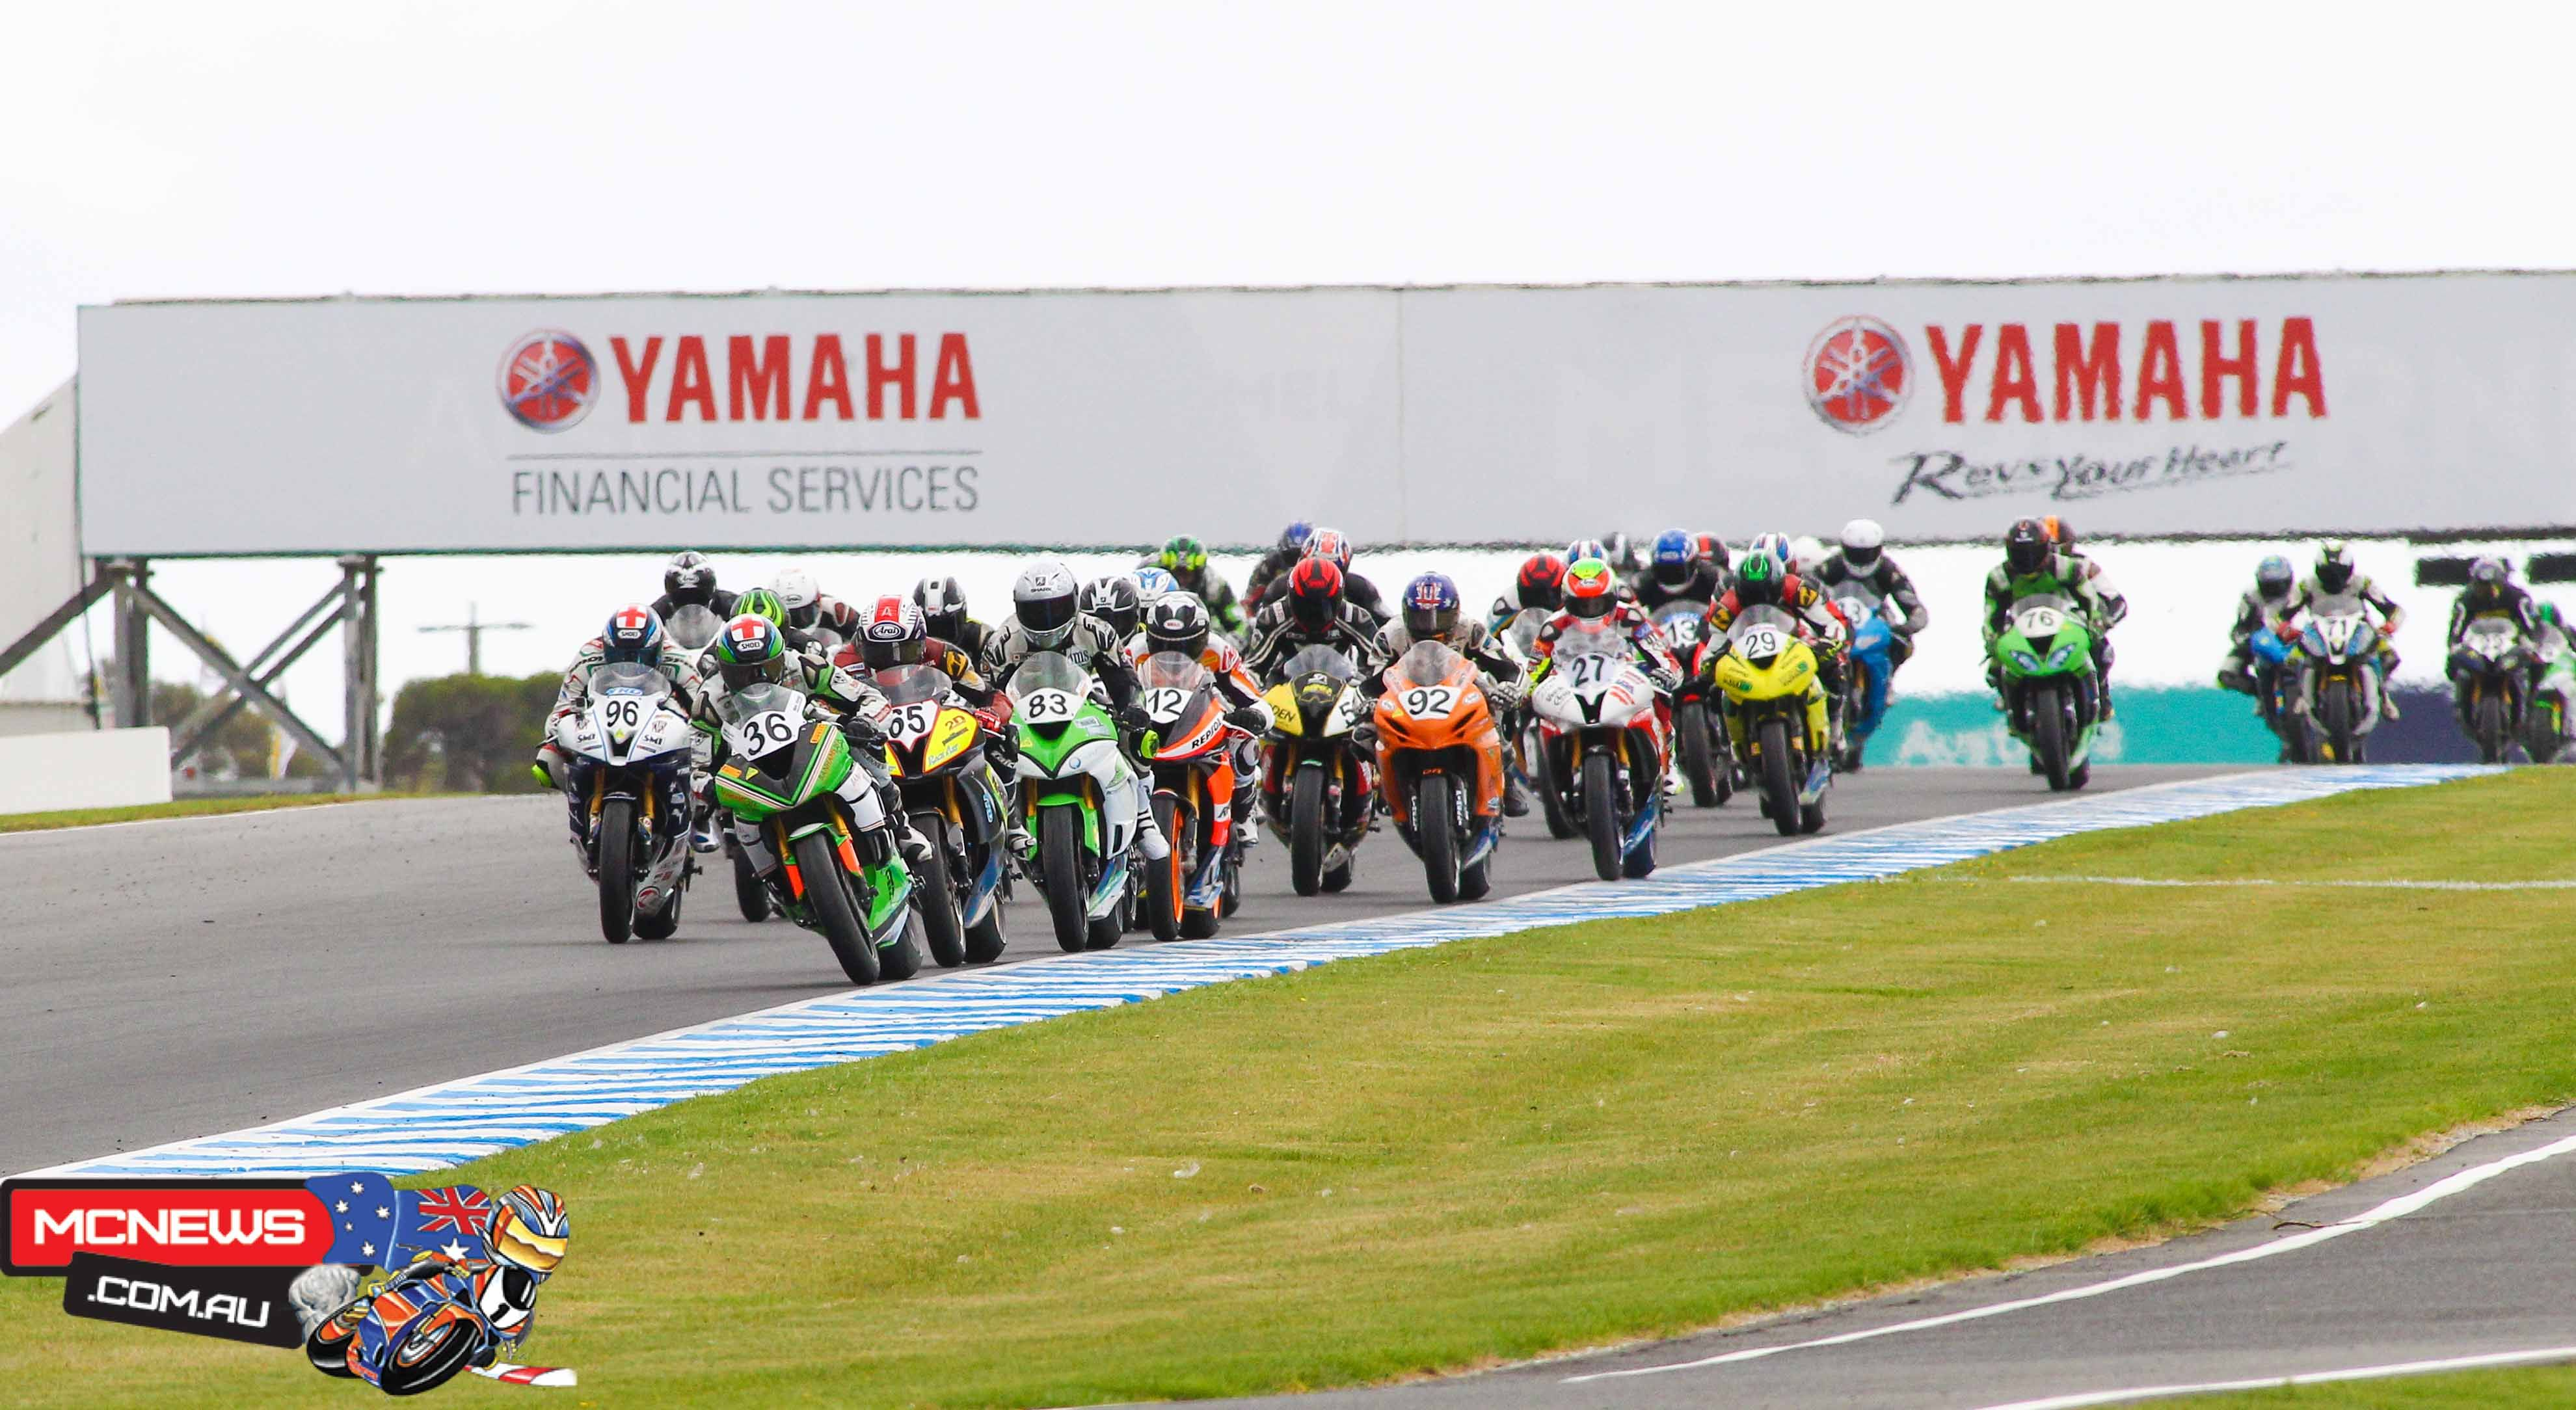 With more than 61,000 spectators streaming through the gates at the Phillip Island Grand Prix Circuit throughout the course of the weekend, fans were treated to warm weather conditions, and plenty of action on the race track.